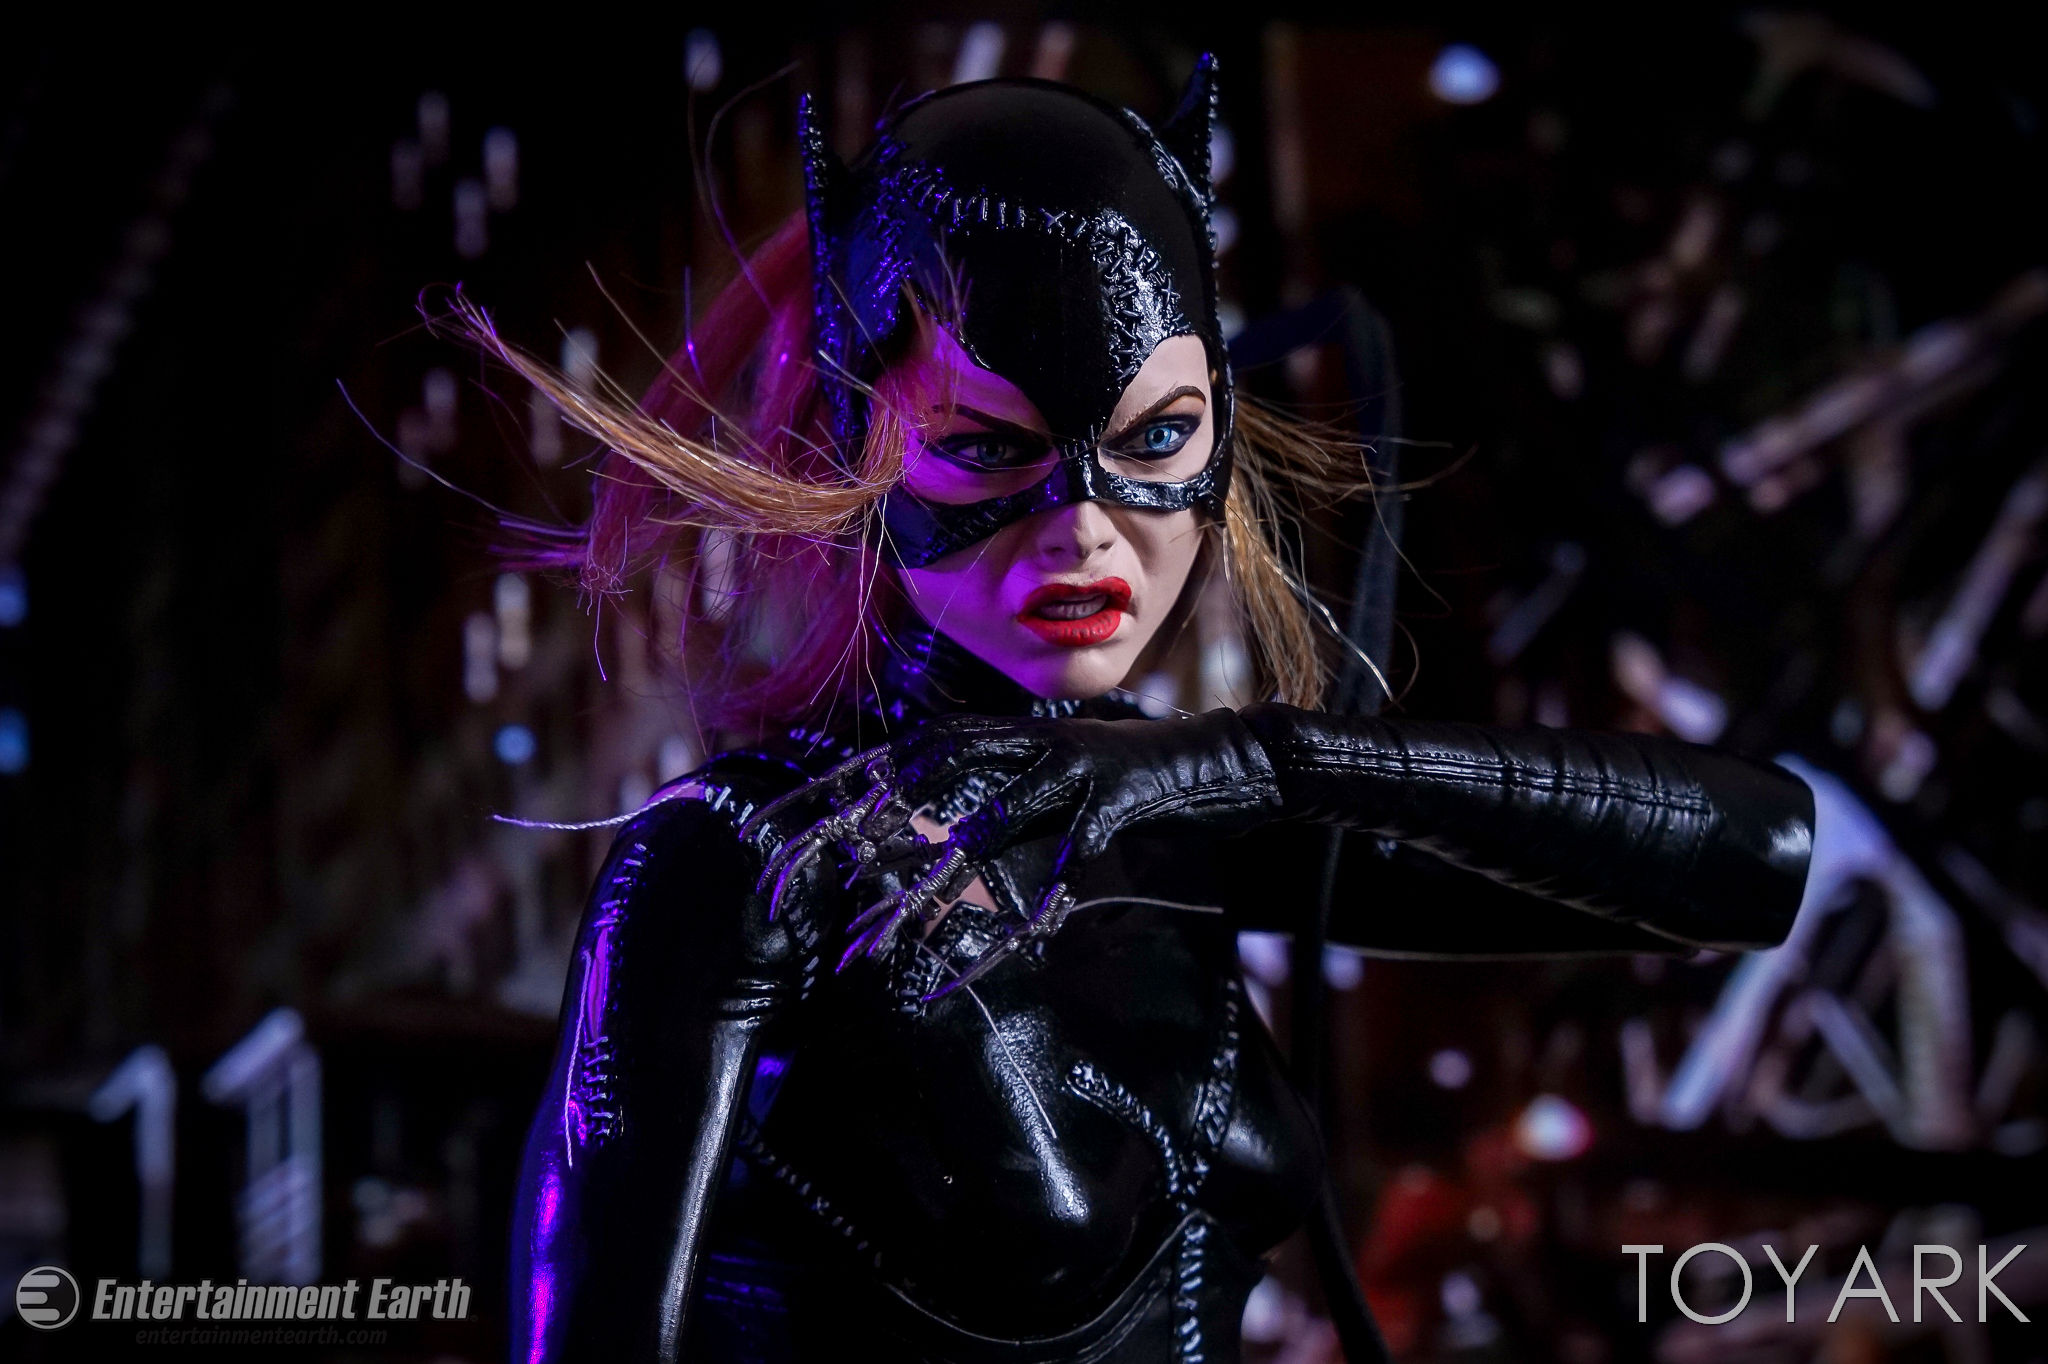 http://news.toyark.com/wp-content/uploads/sites/4/2017/03/NECA-Batman-Returns-Catwoman-031.jpg